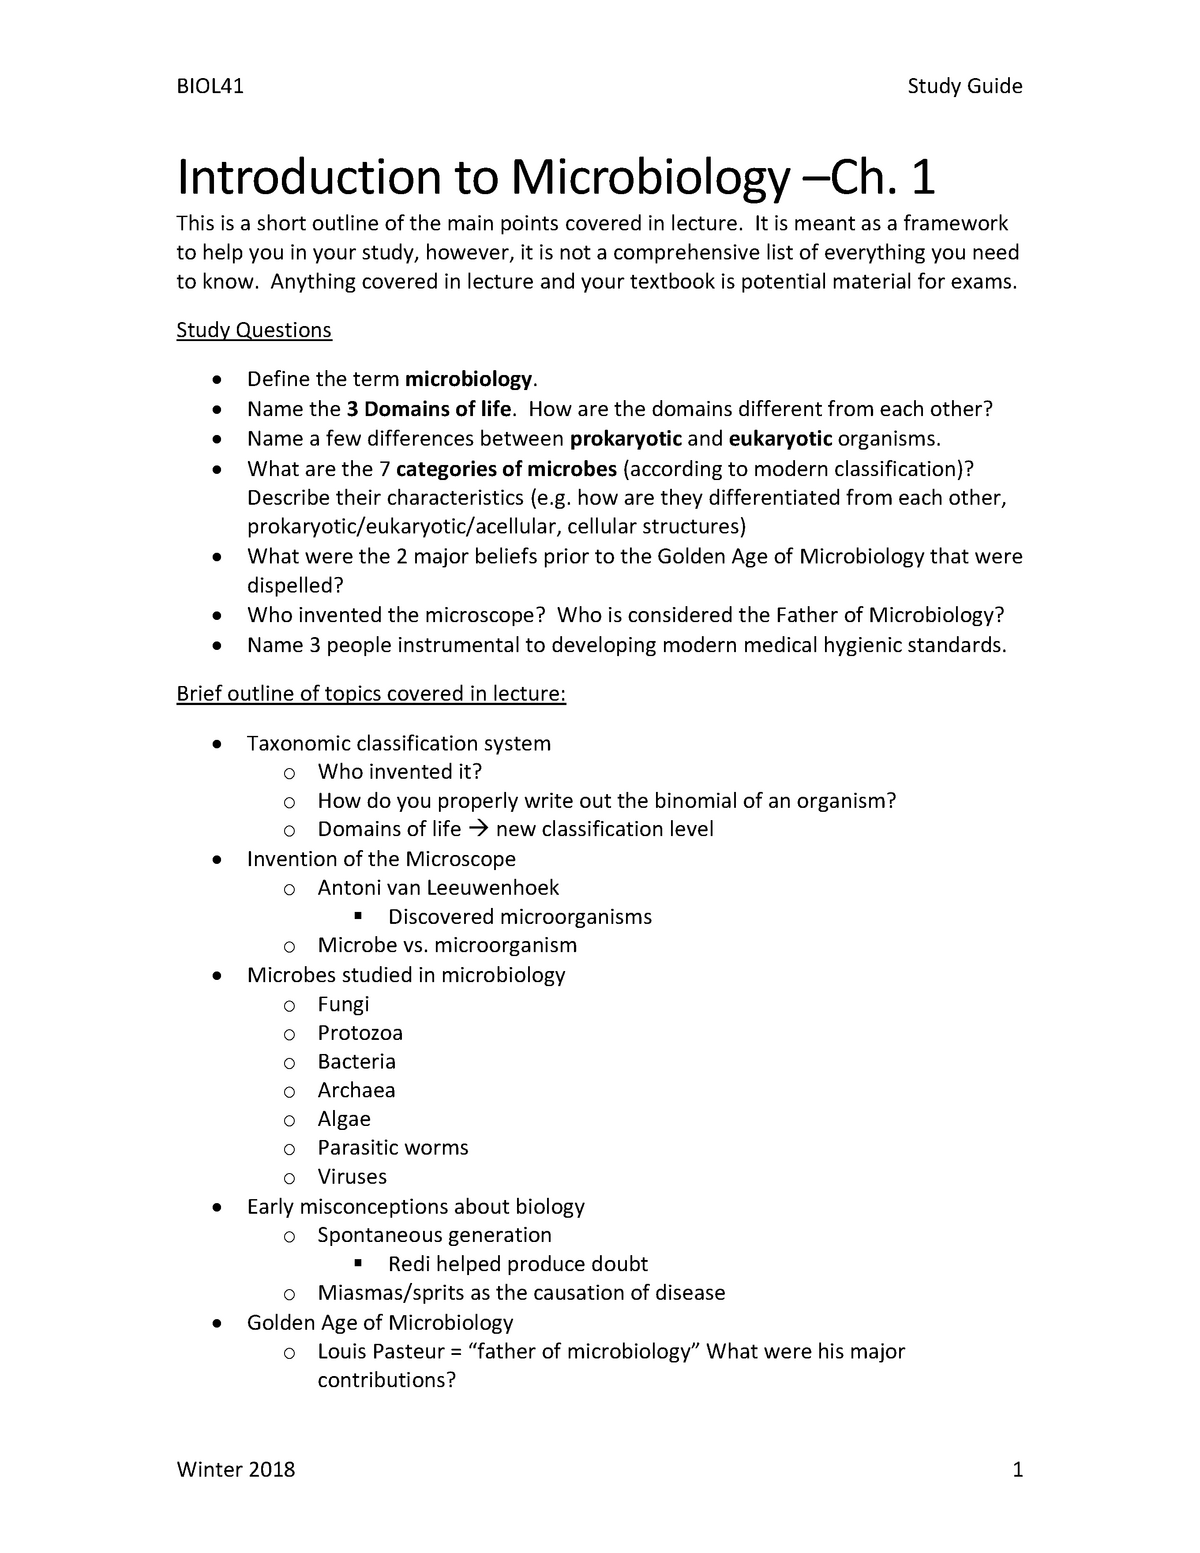 Study Guide Chapter 1 Introdution to Microbiology - METX 119